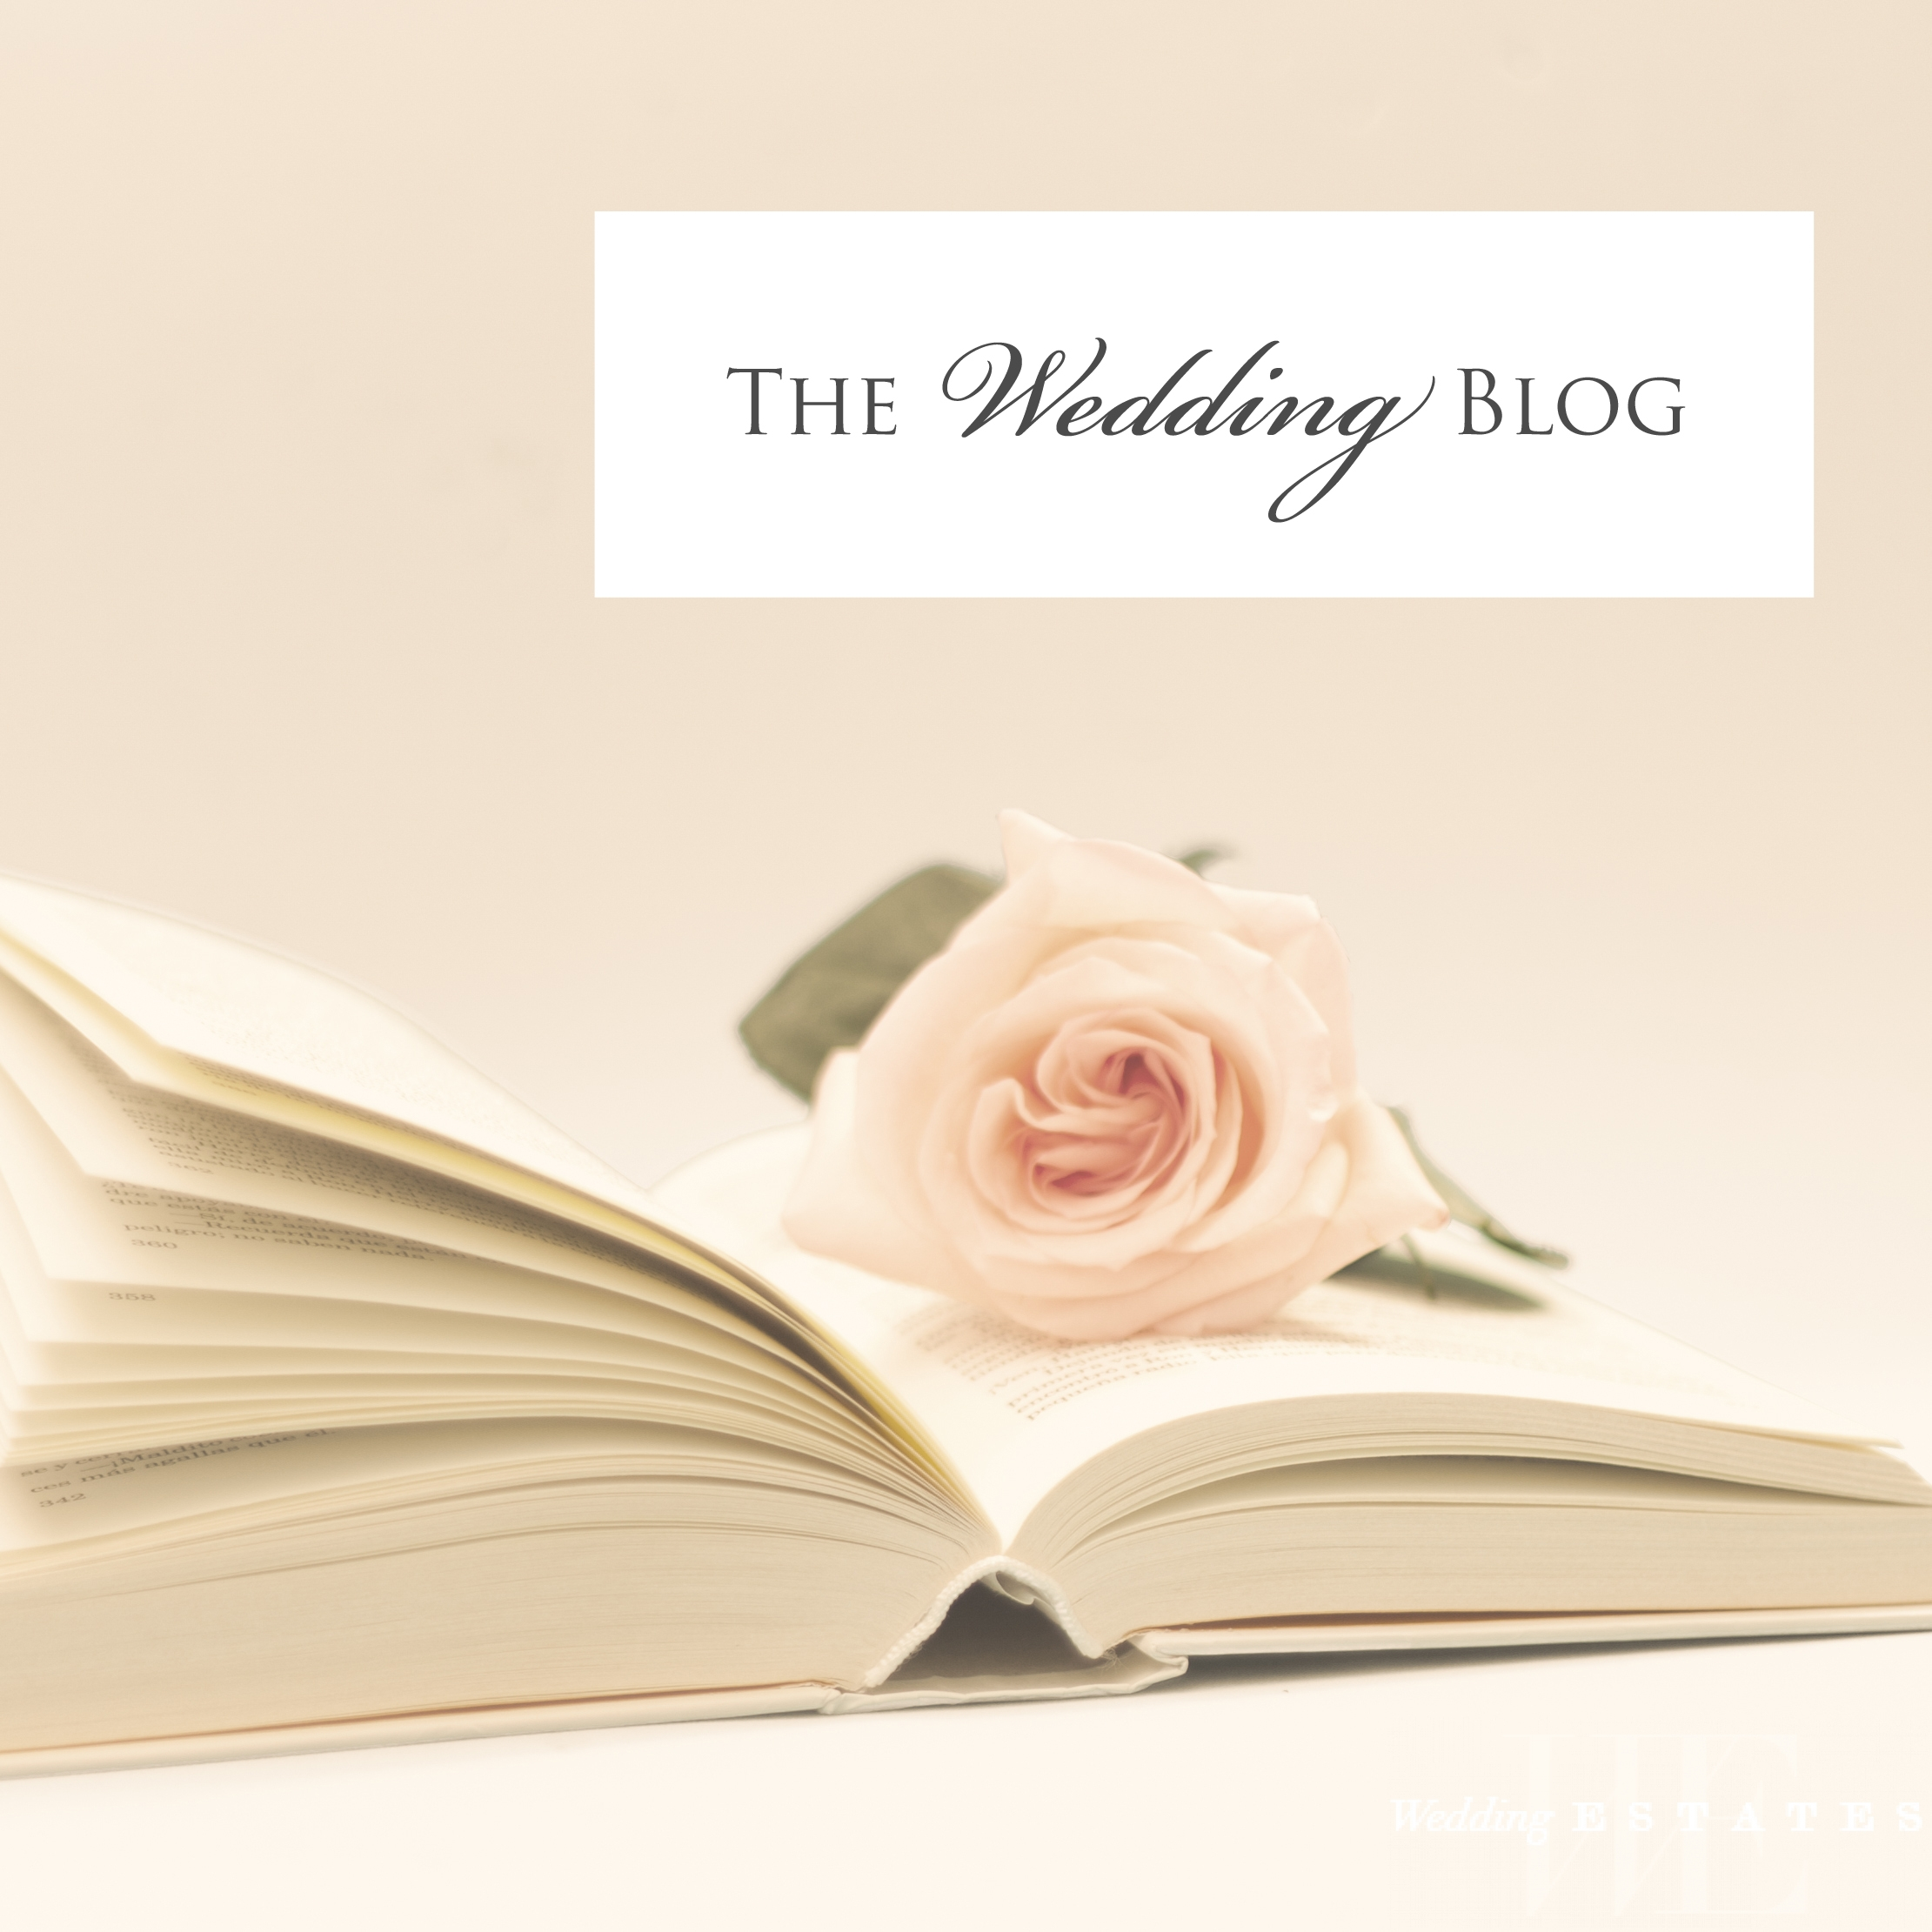 Best wedding blogs for inspiration wedding estates best wedding blogs for inspiration junglespirit Image collections